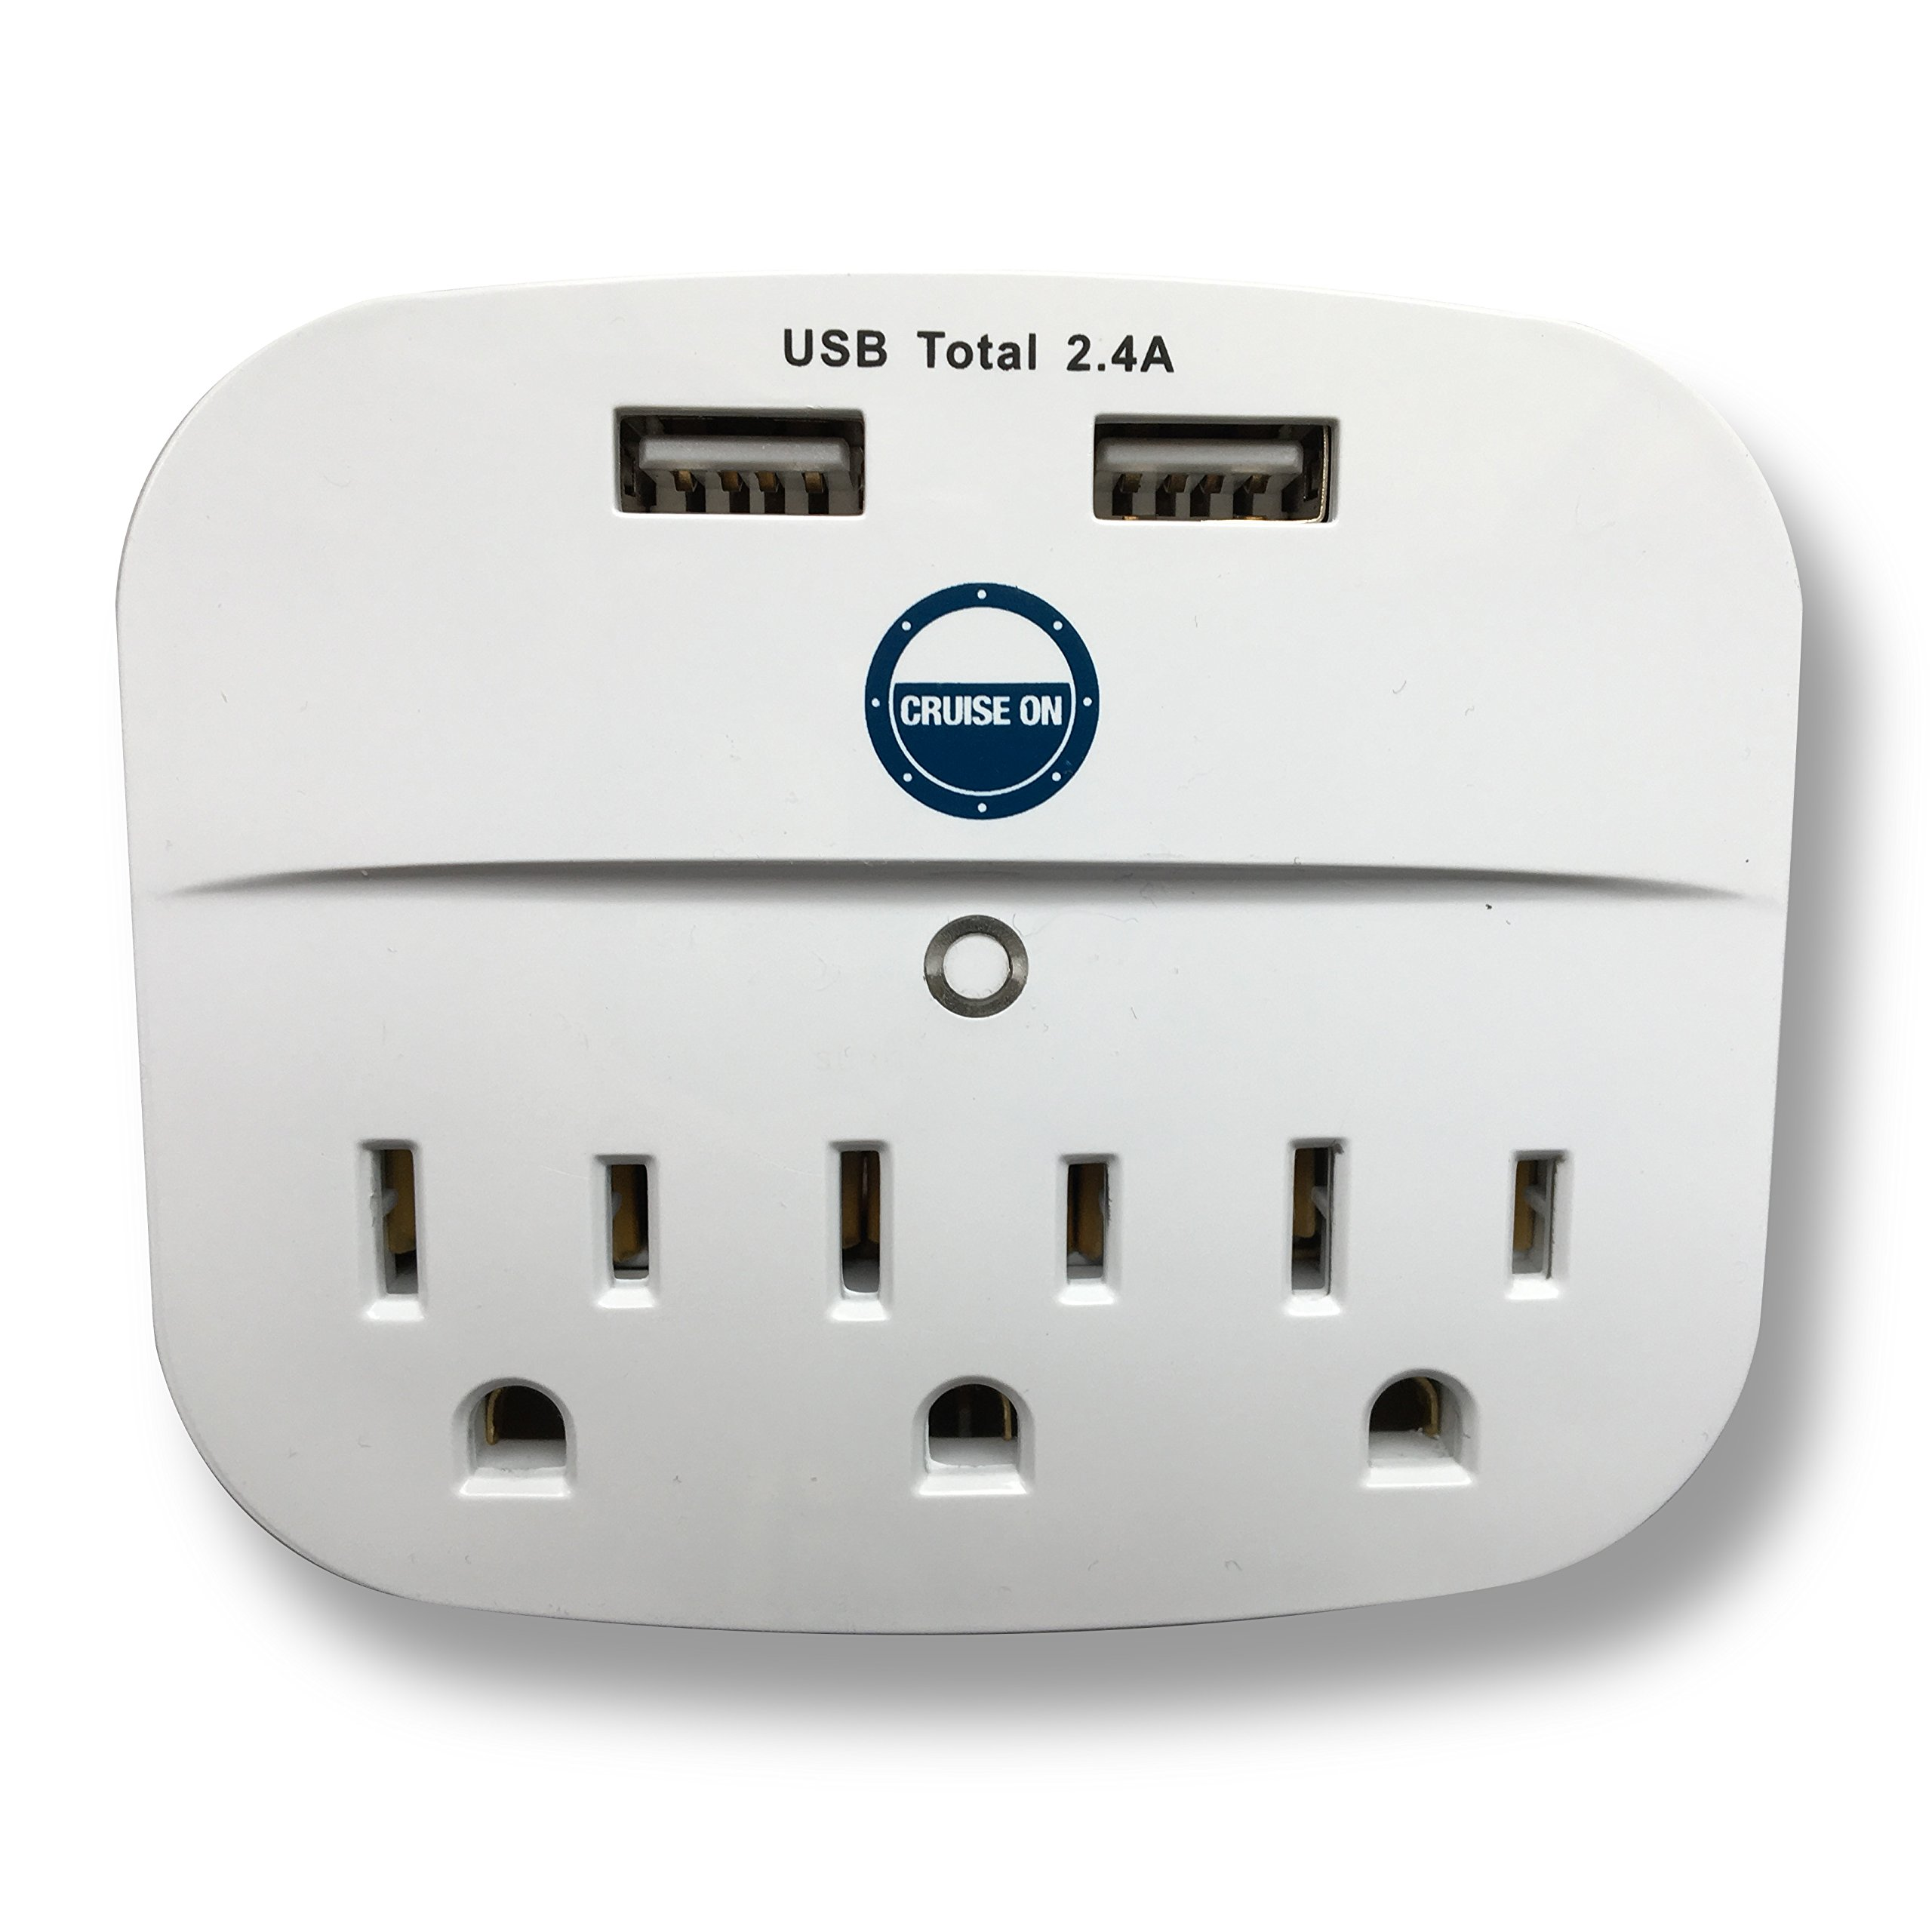 Cruise Power Strip with USB Outlets - Non Surge Protection - Cruise Ship Approved by Cruise On